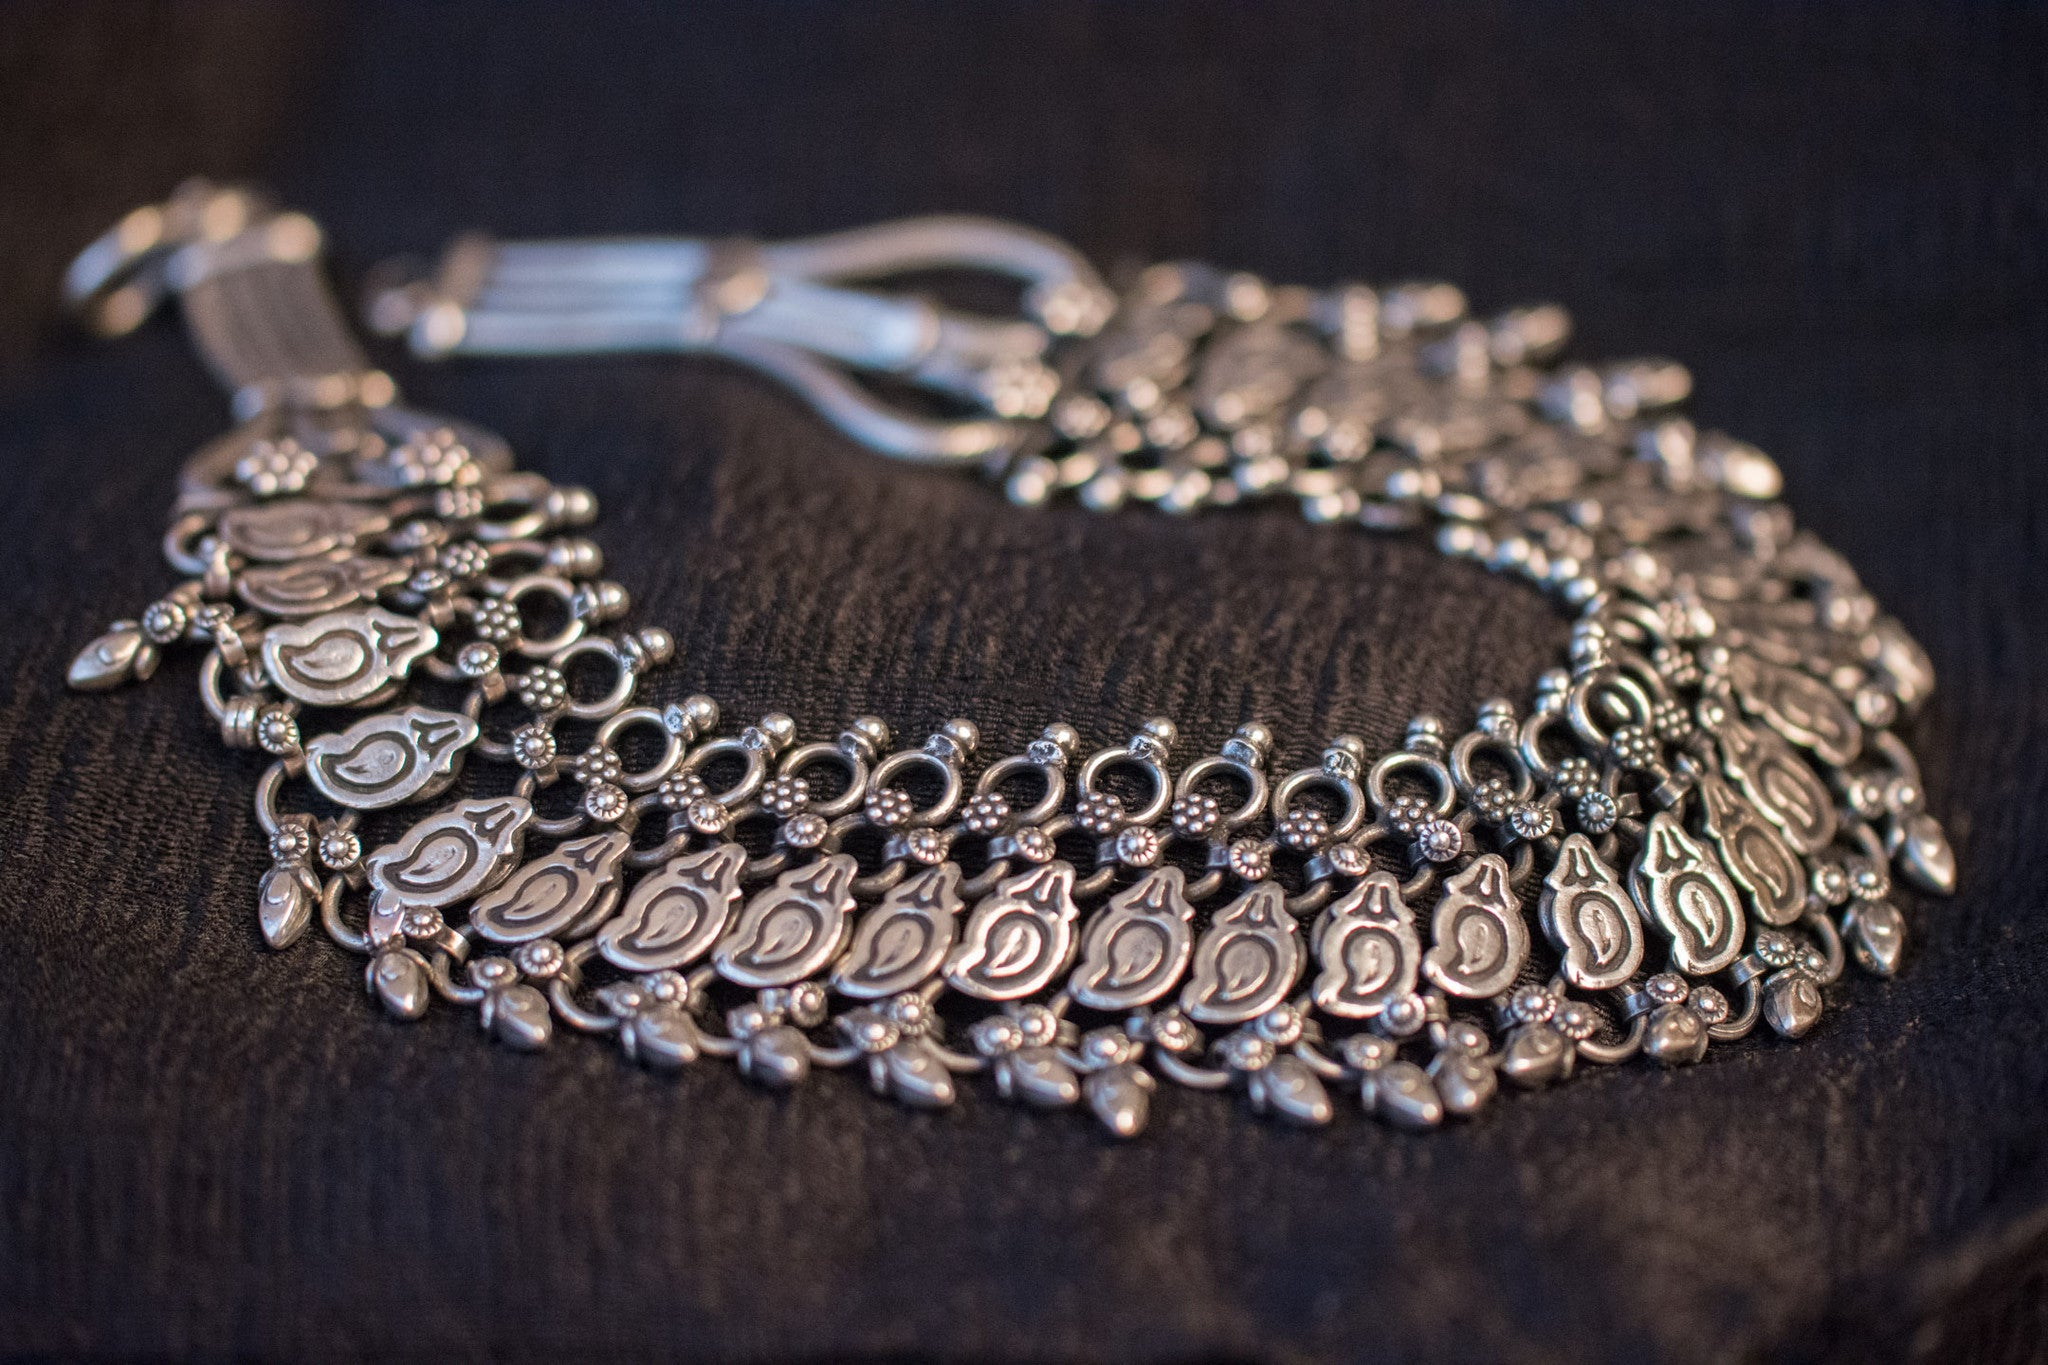 20a525-silver-amrapali-necklace-embossed-bead-work-geometric-shapes-floral-alternate-view